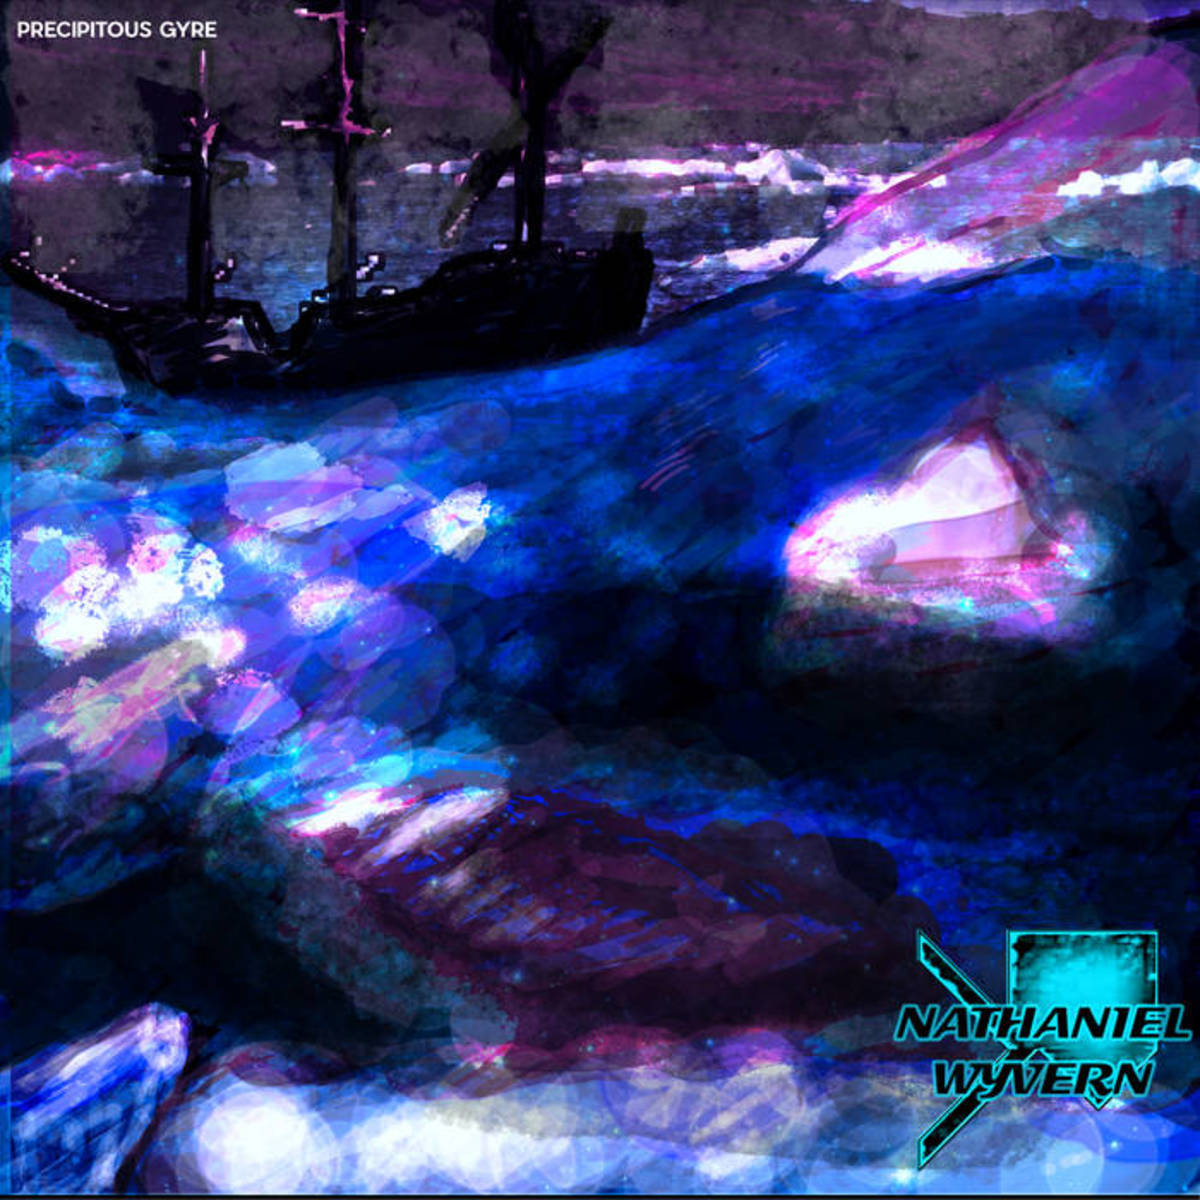 synth-ep-review-precipitous-gyre-by-nathaniel-wyvern